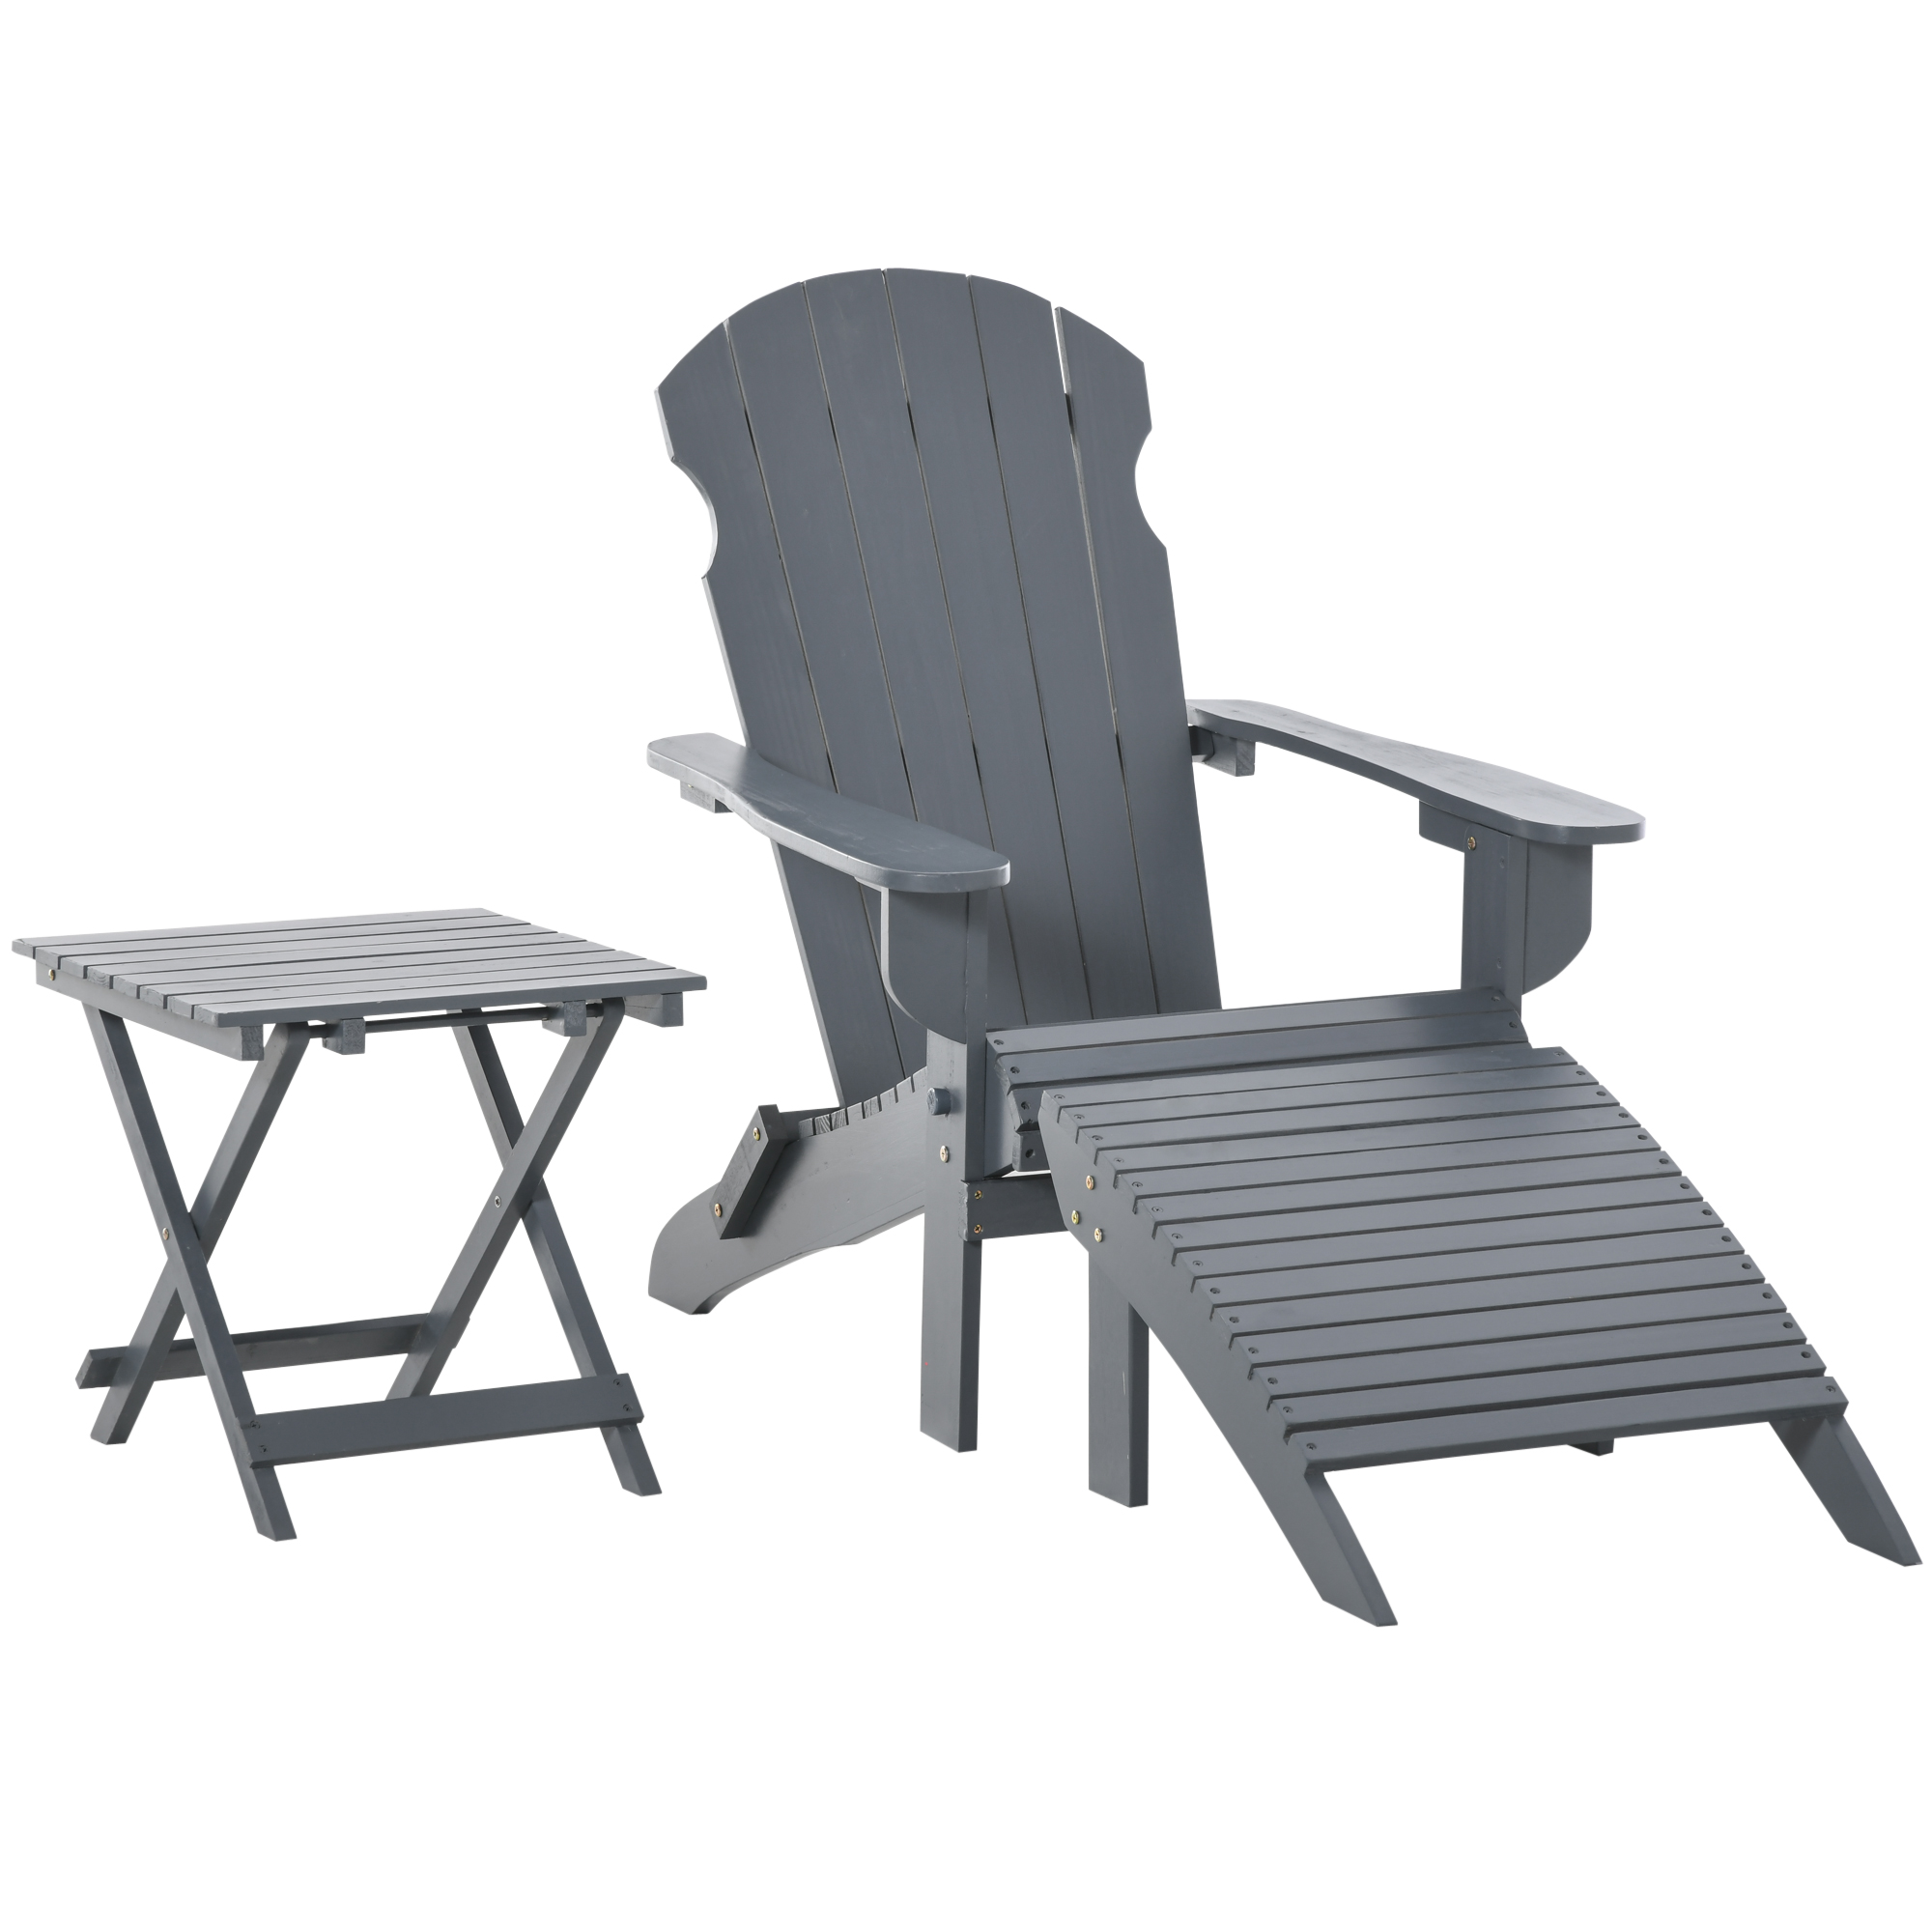 Fauteuil jardin pliable repose-pied table basse sapin gris